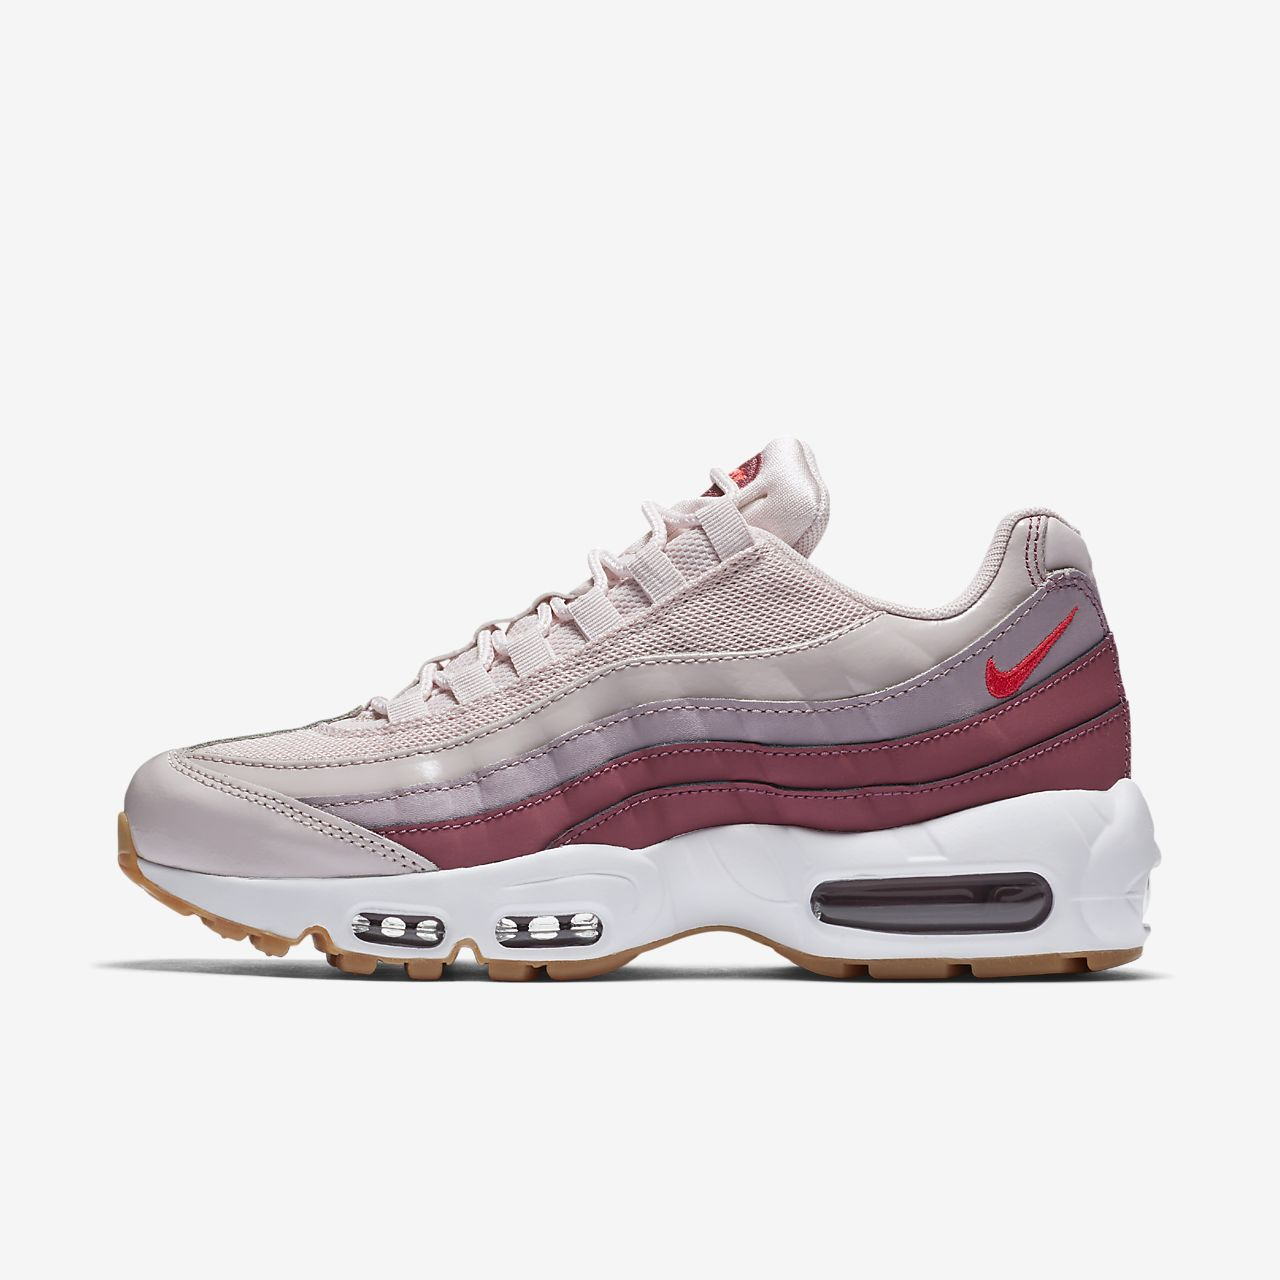 Royaume-Uni disponibilité dde5a 00889 nike air max 95